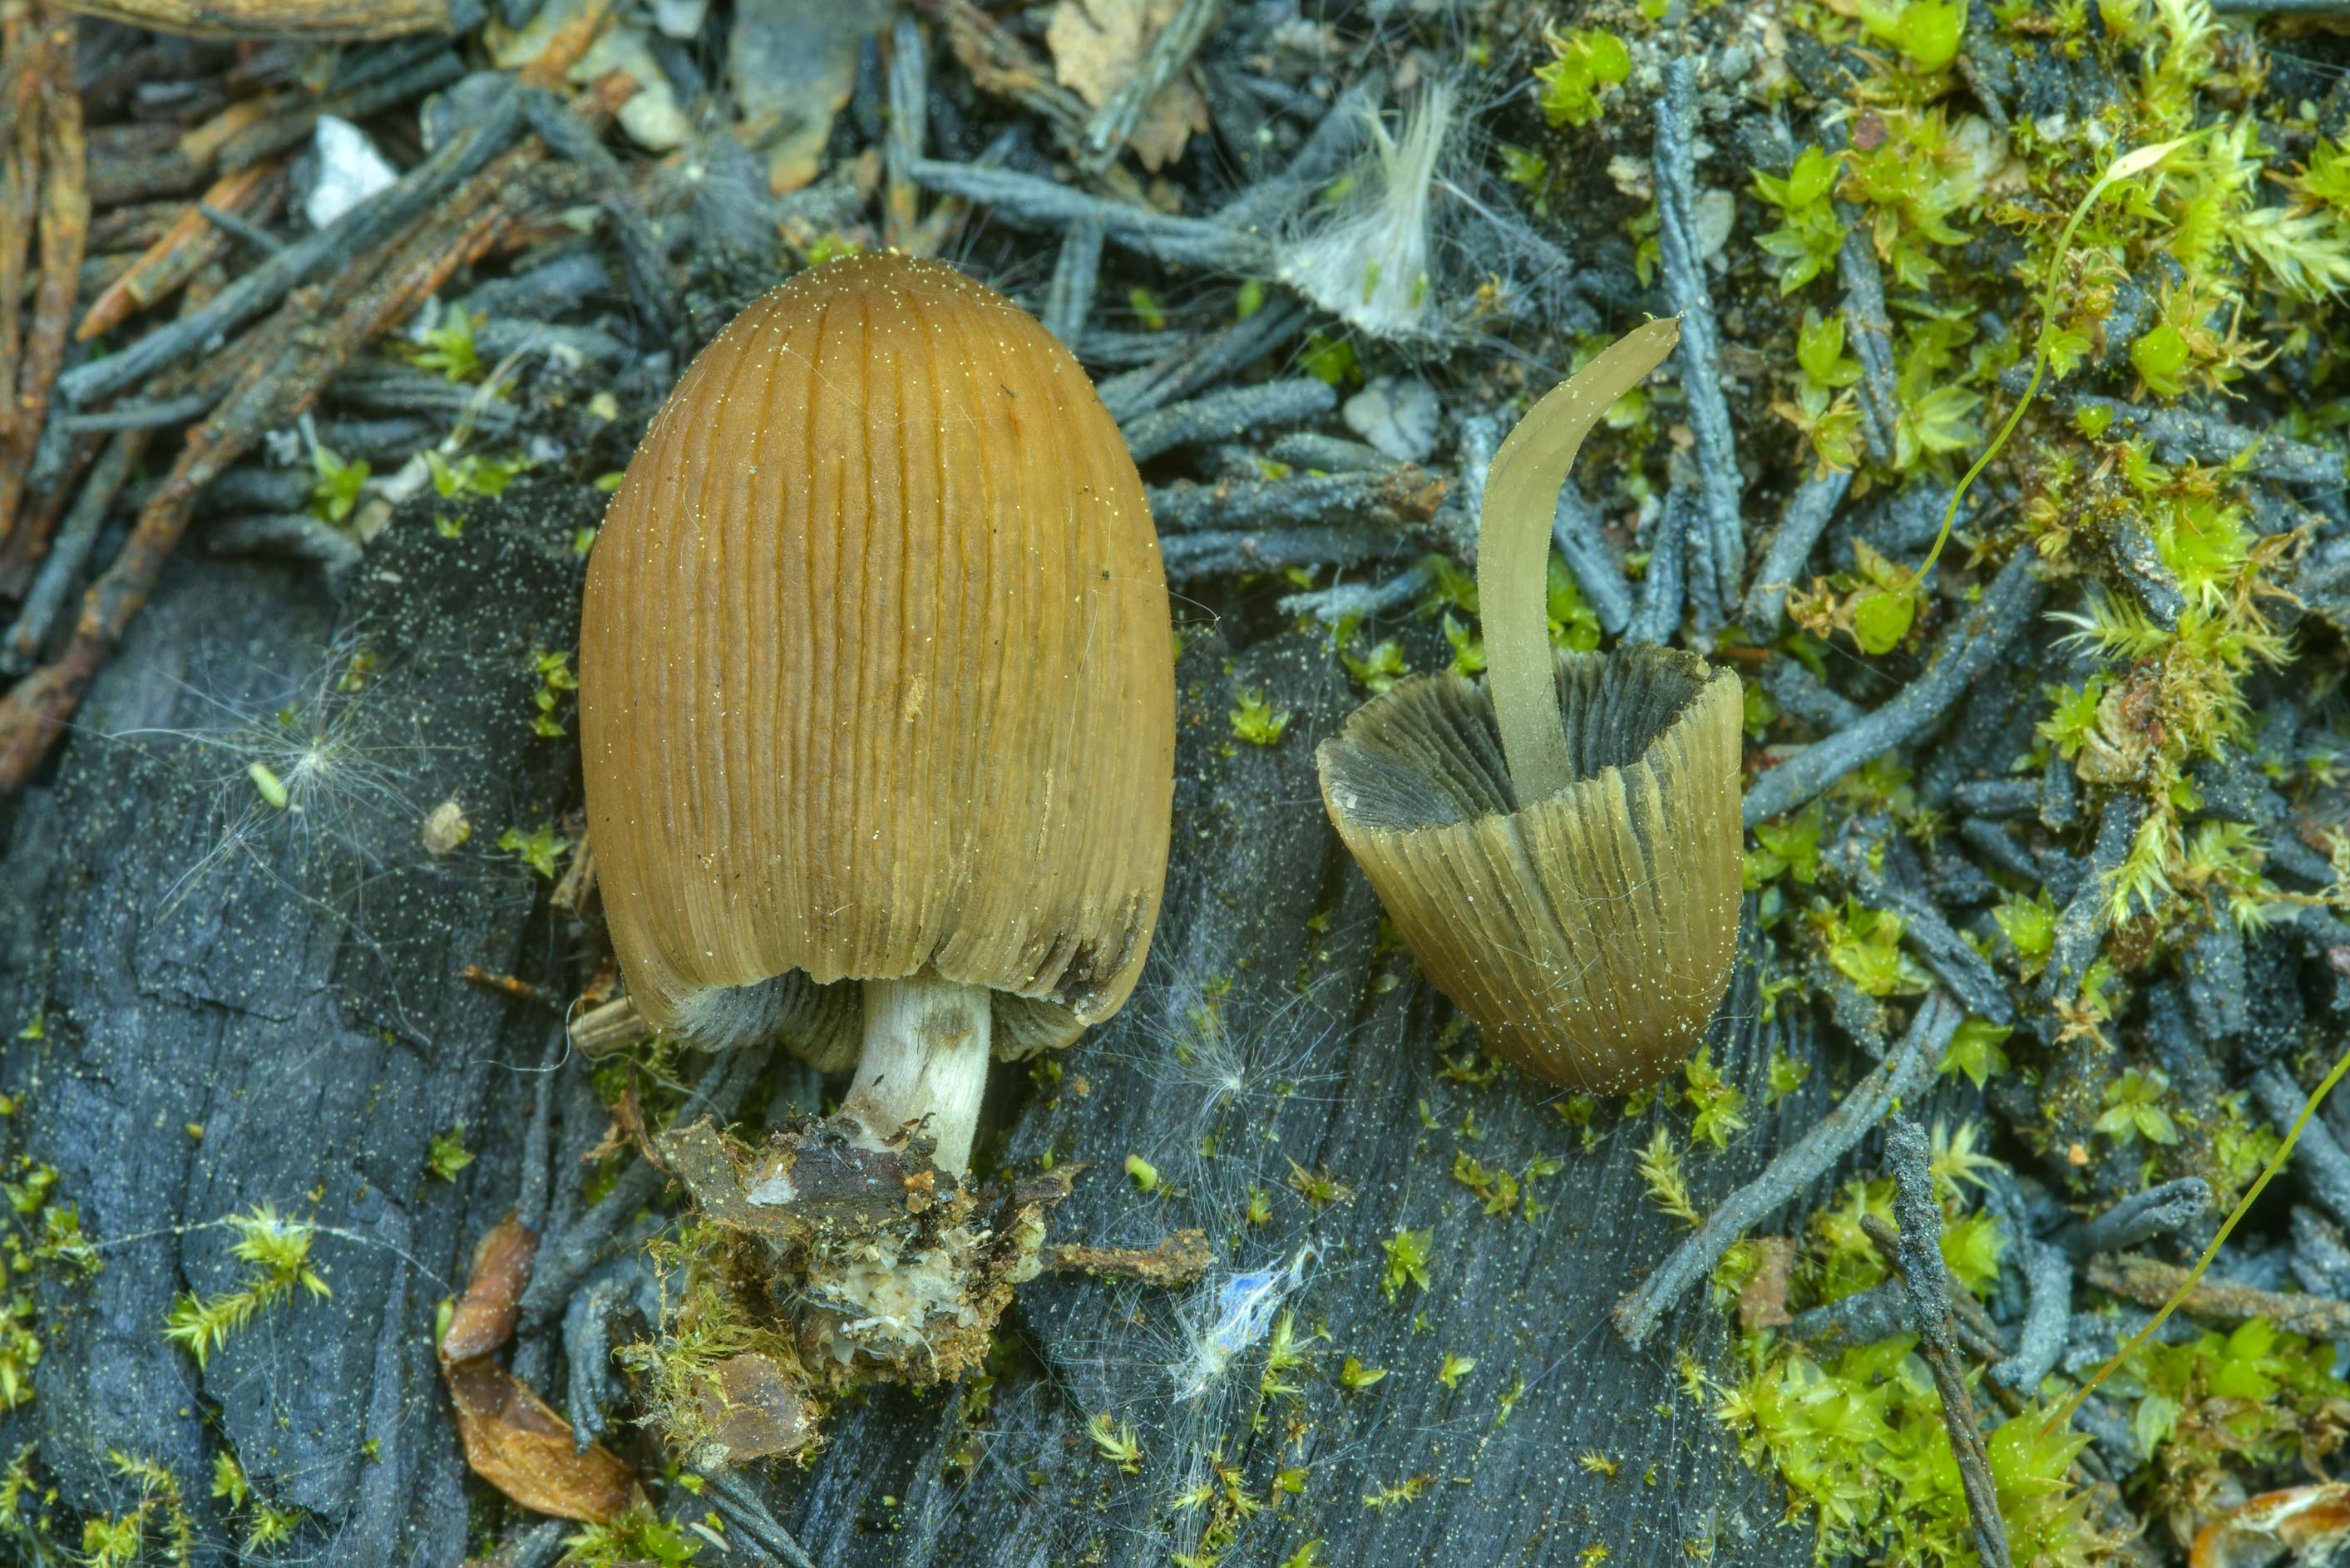 Inkcap mushroos Coprinellus angulatus on a site...north from St.Petersburg, Russia